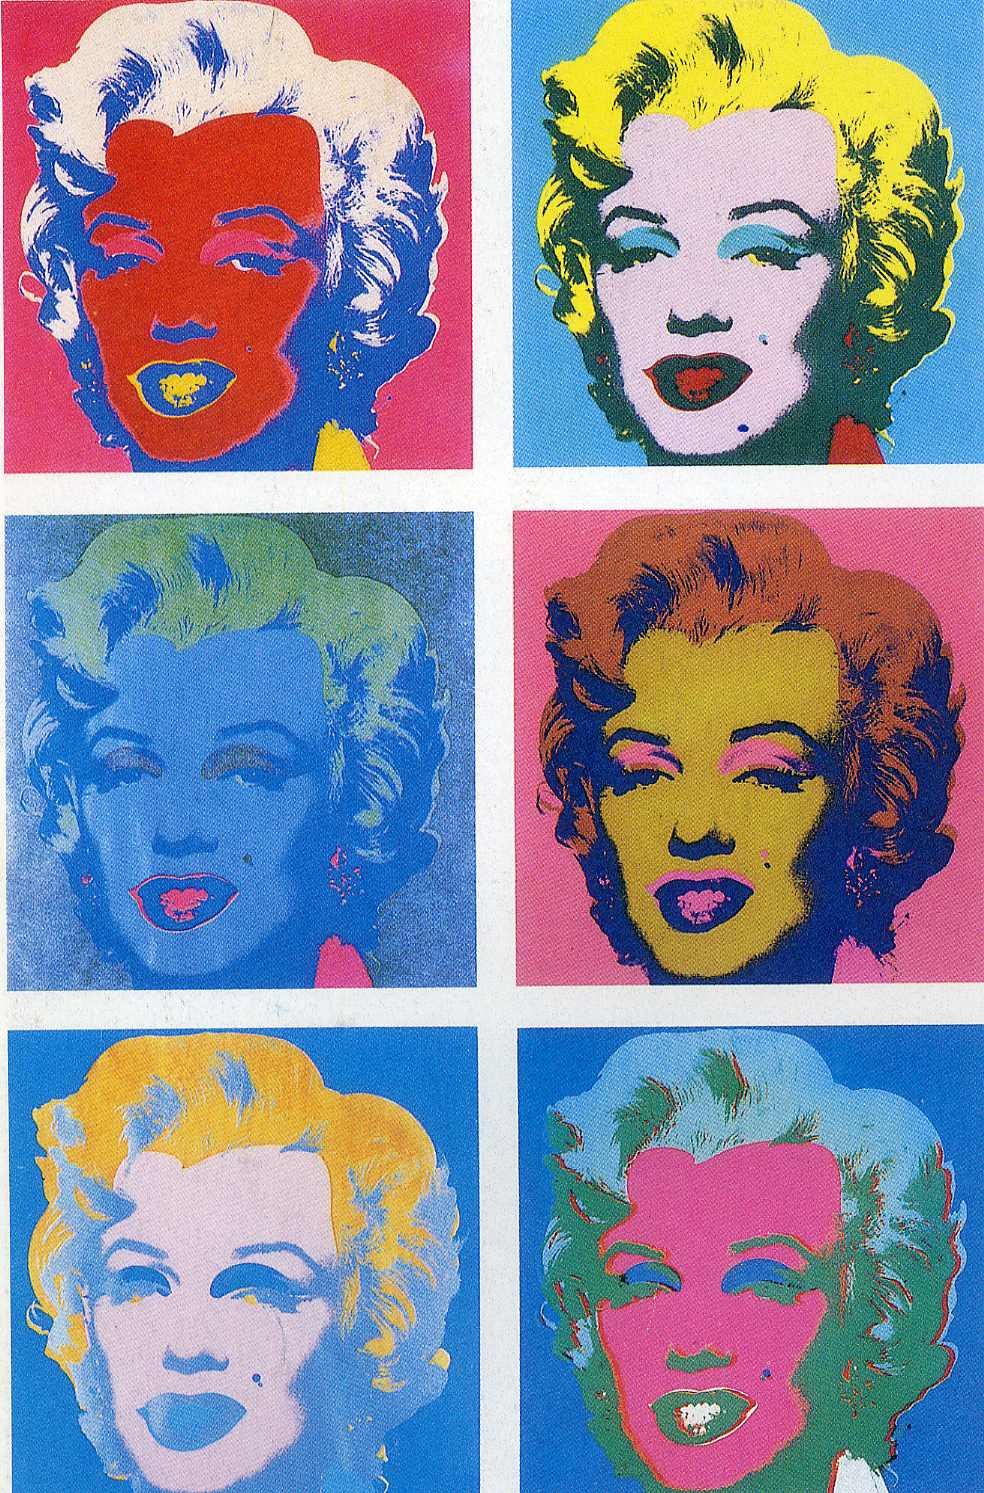 Marilyn Monroe 6 - Andy Warhol Wallpaper Image